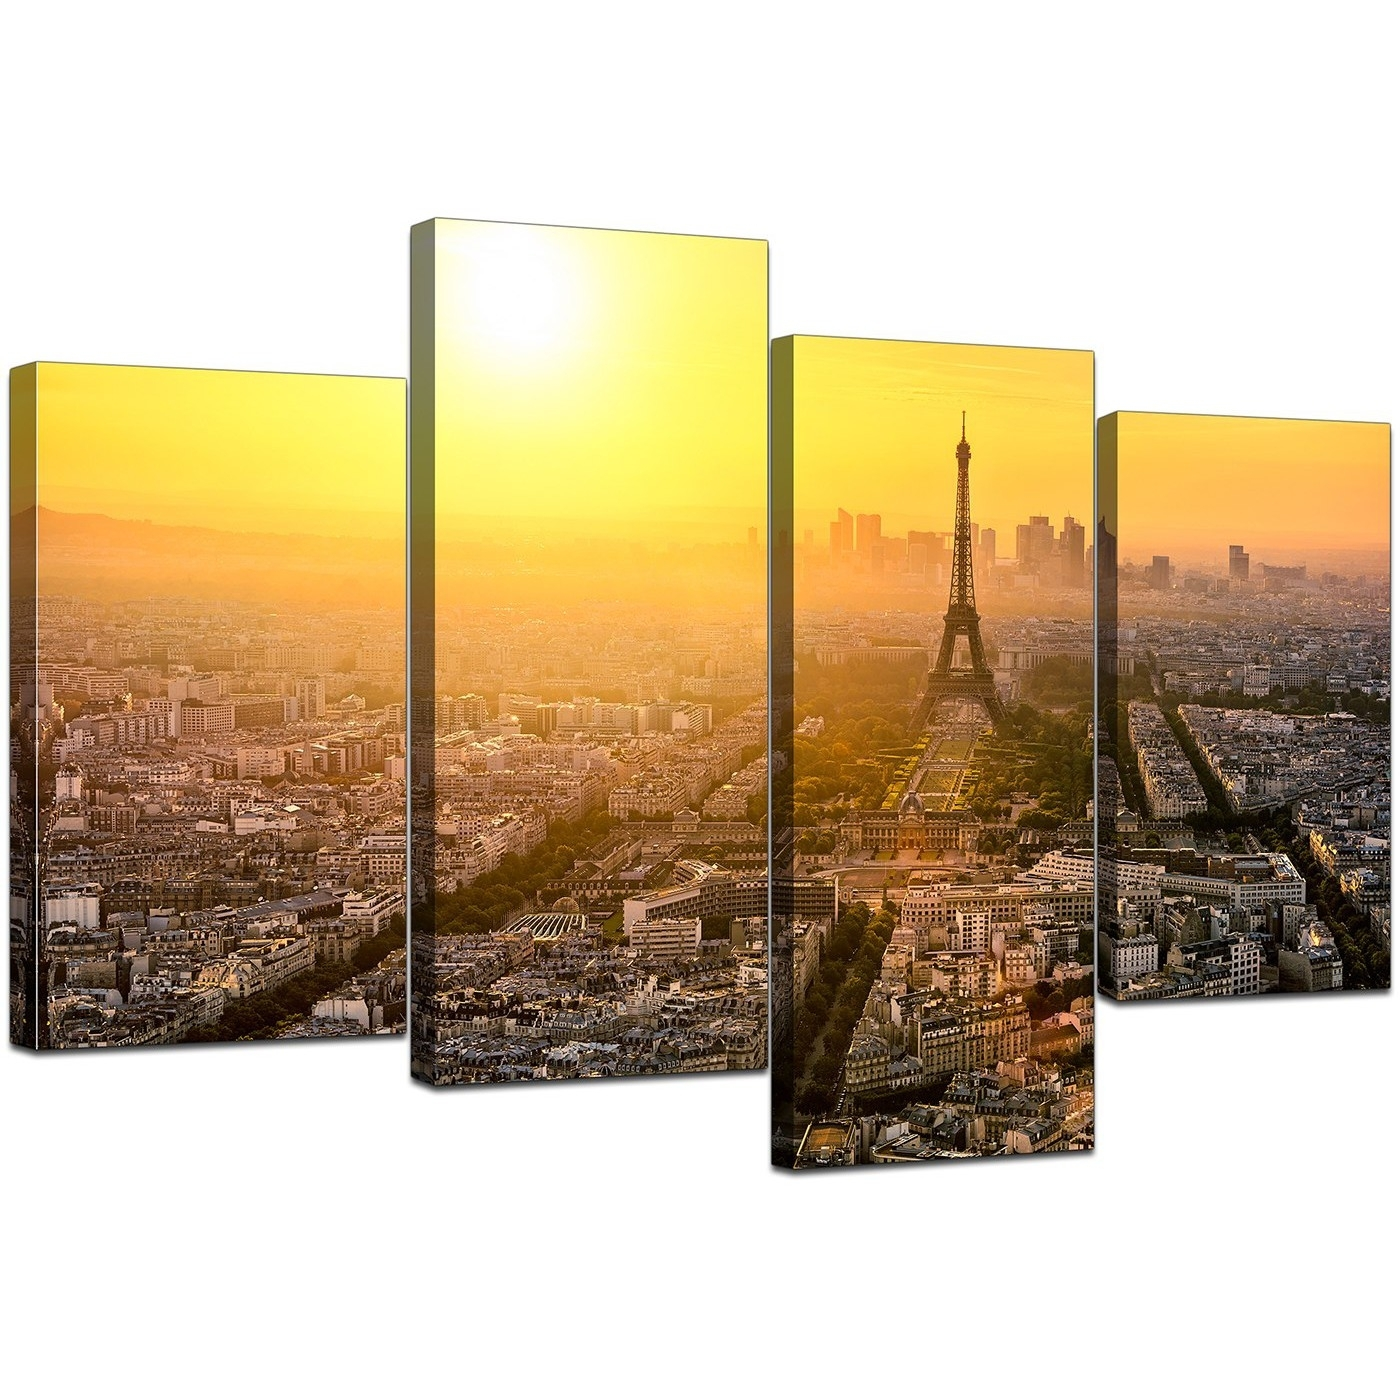 Magnificent 4 Piece Wall Art Canvas Contemporary - The Wall Art ...